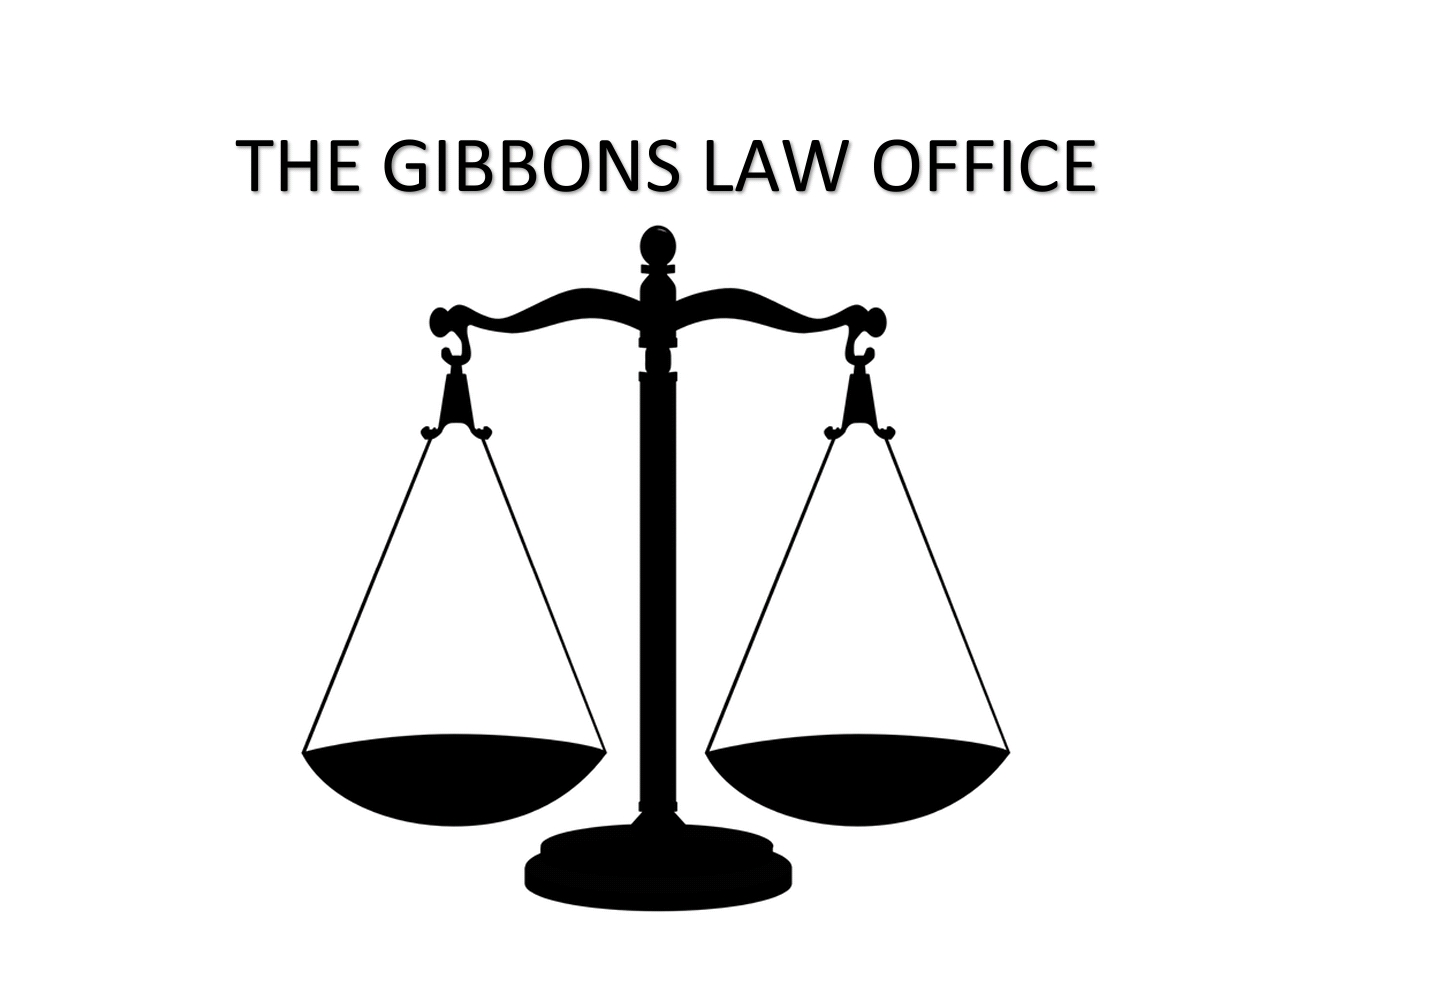 Gibbons Law